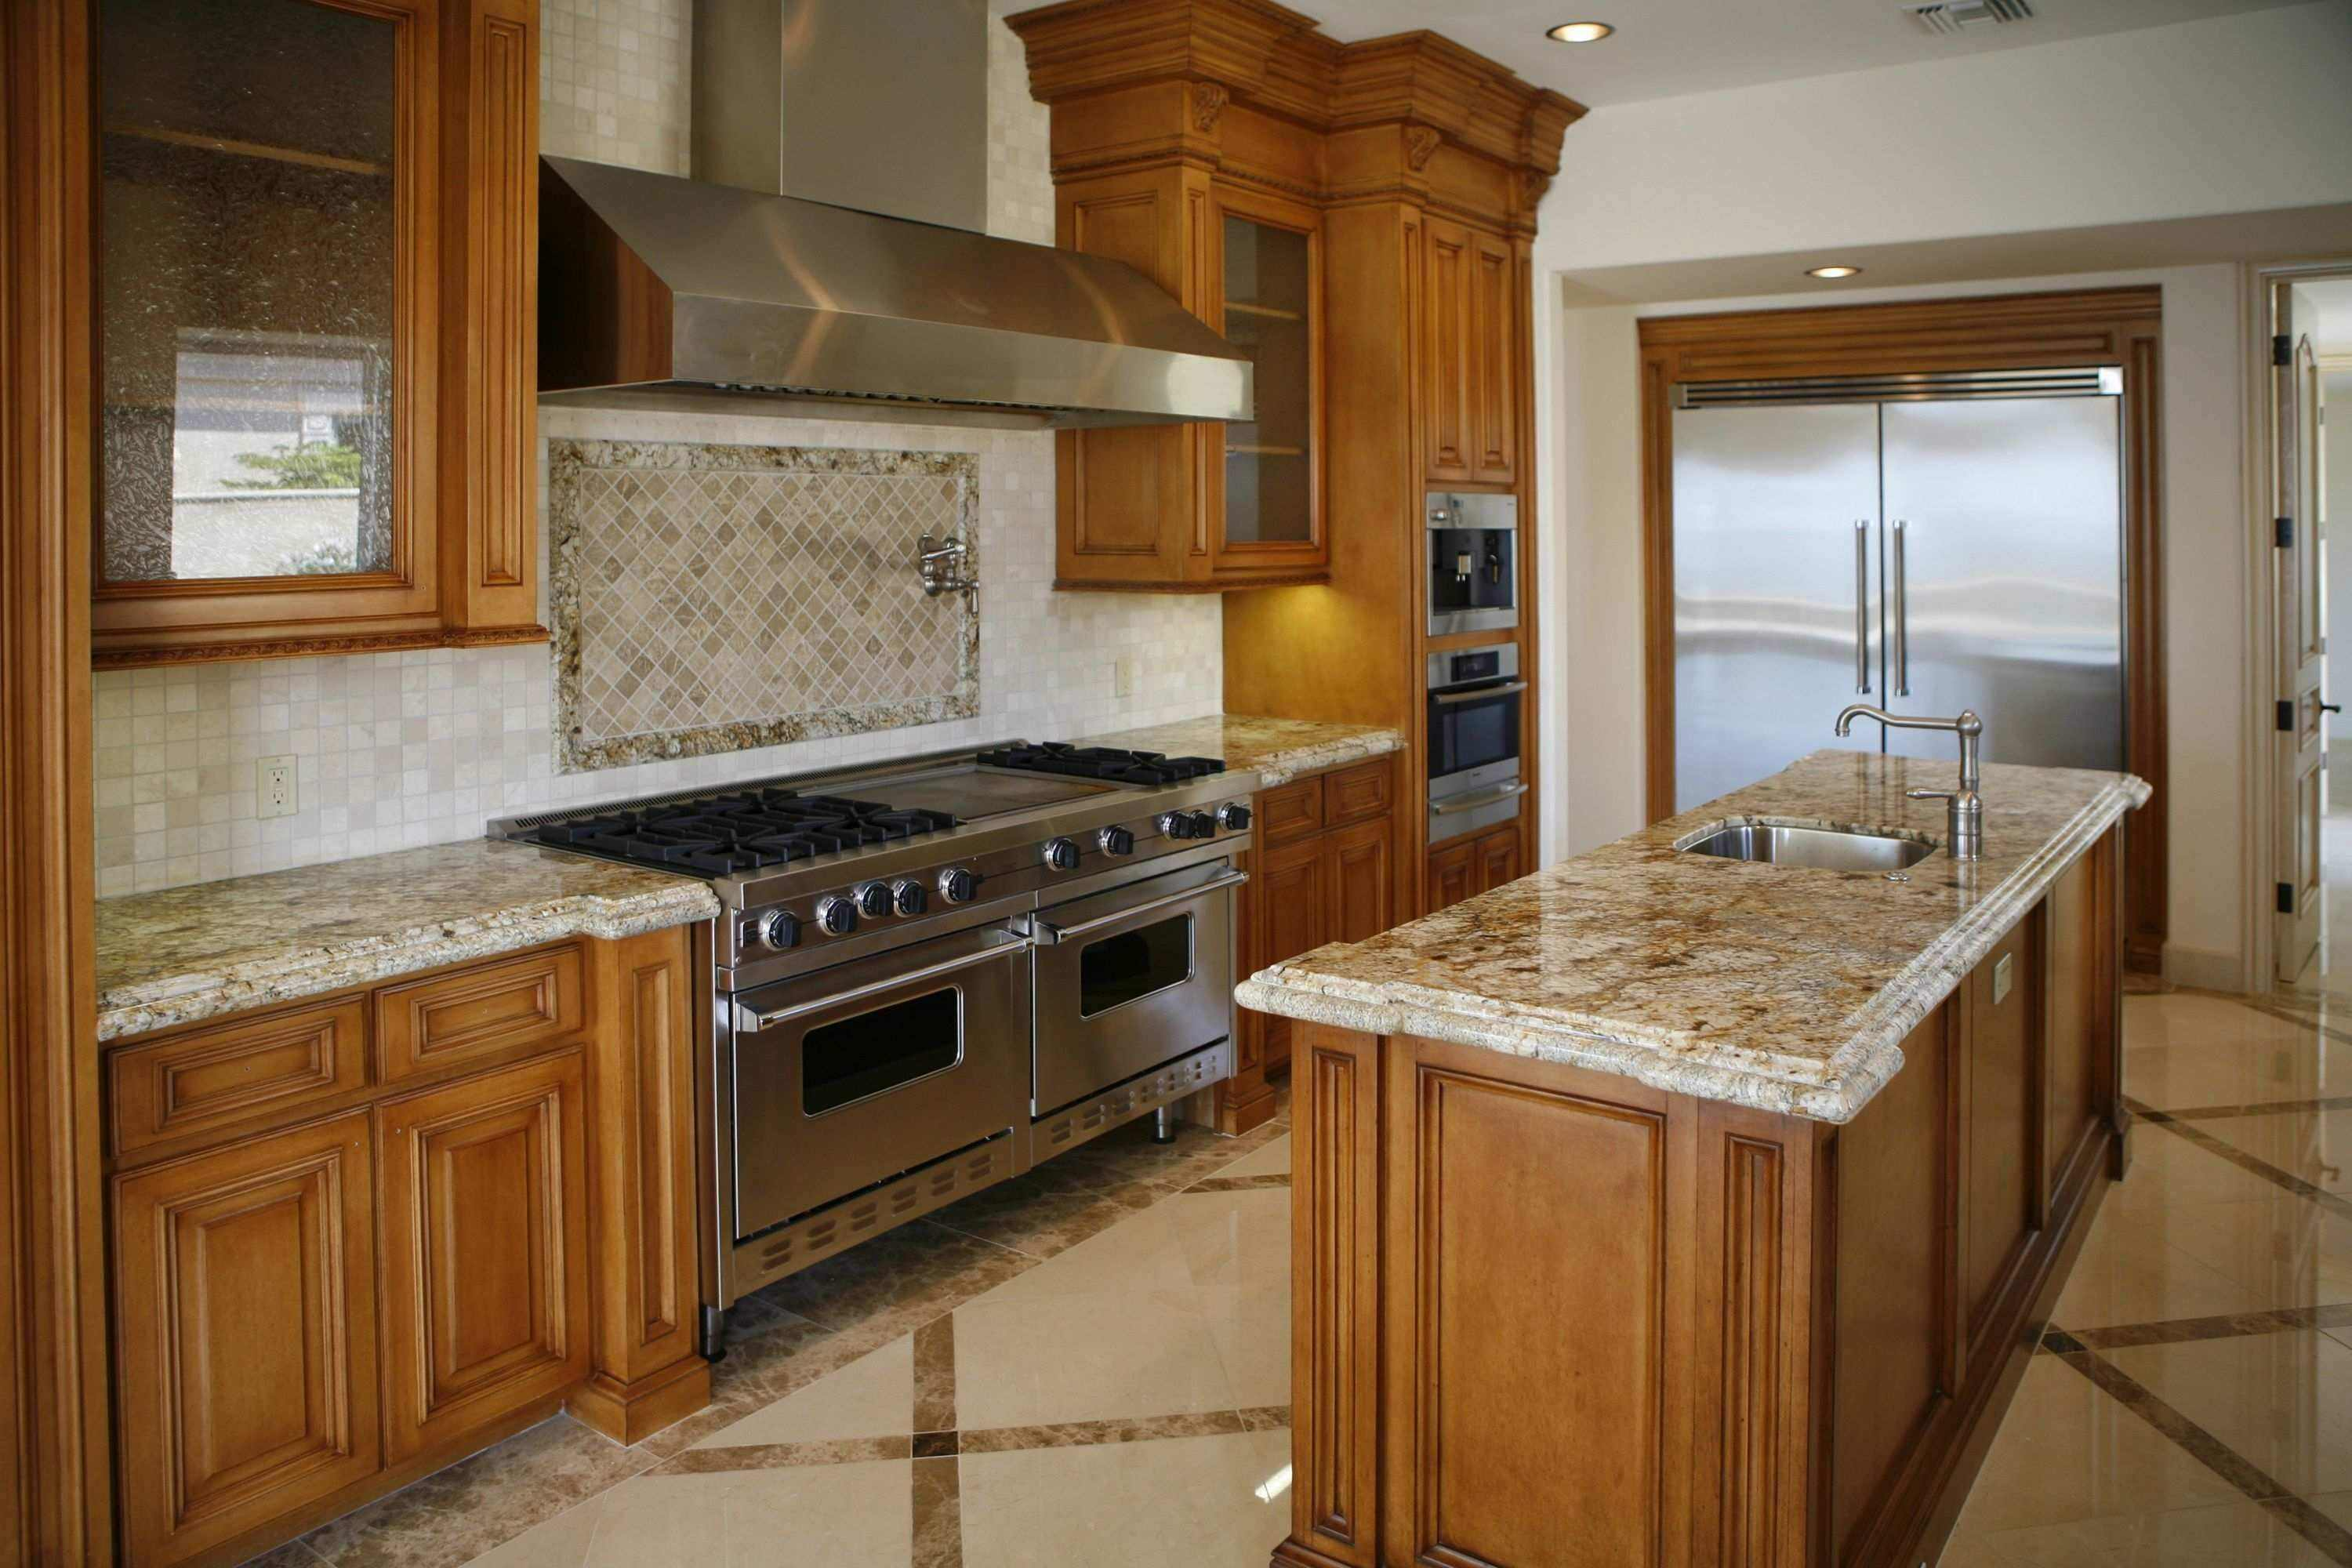 unfinished of cabinet lowes free pictures standing utility shelving size walmart pantry full tall depot cabinets kitchen freestanding startling home designs